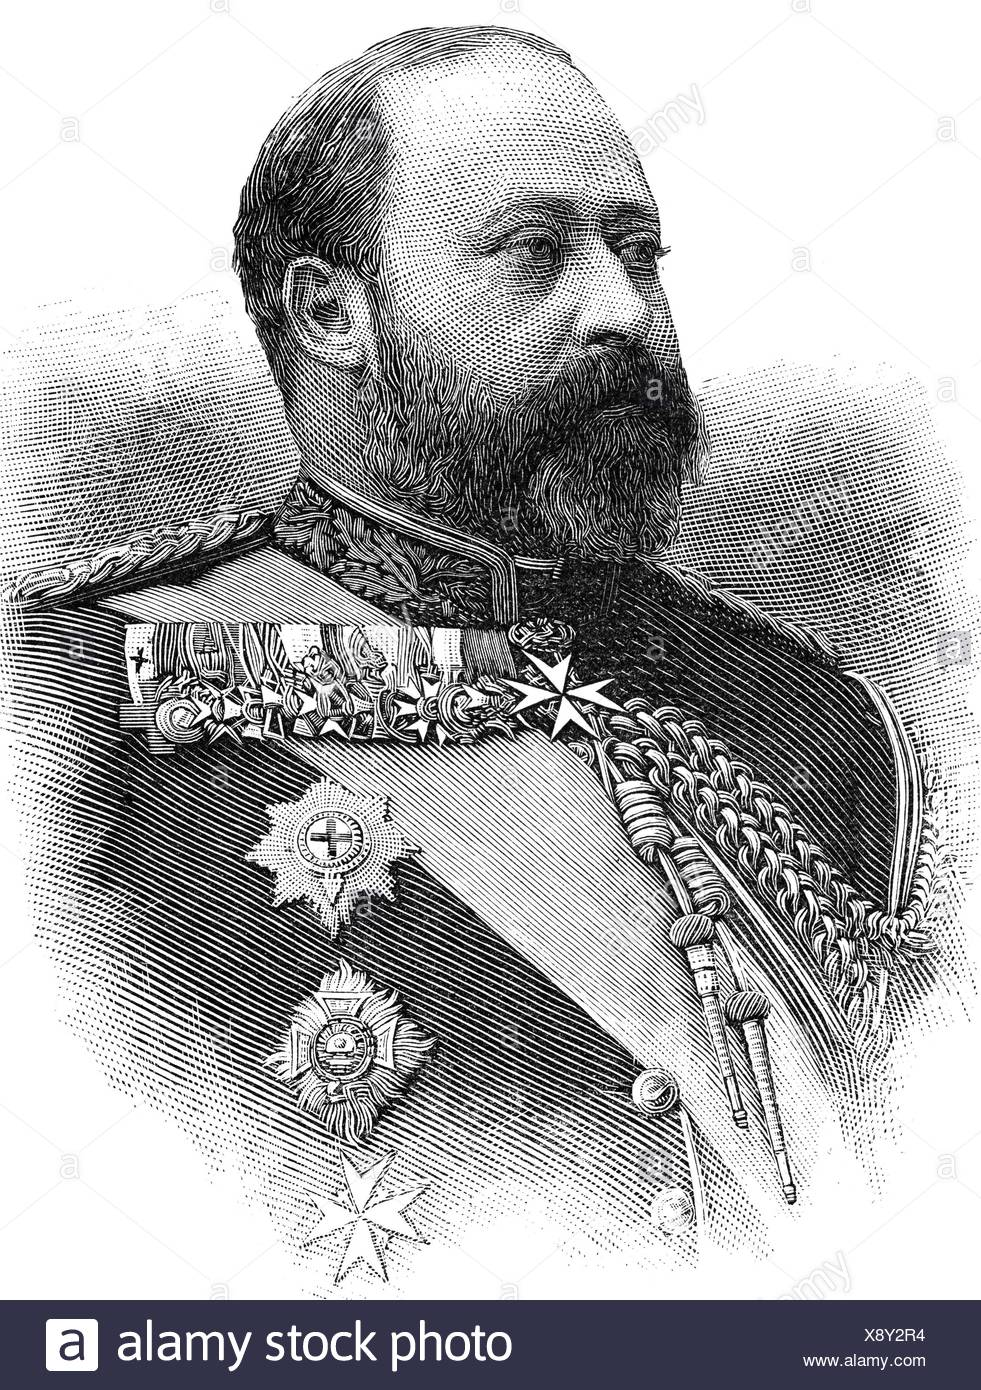 Edward VII, 9.11.1841 - 6.5.1910, King of Great Britian 22.1.1901 - 6.5.1910, portrait, wood engraving, 1891, , Additional-Rights-Clearances-NA - Stock Image